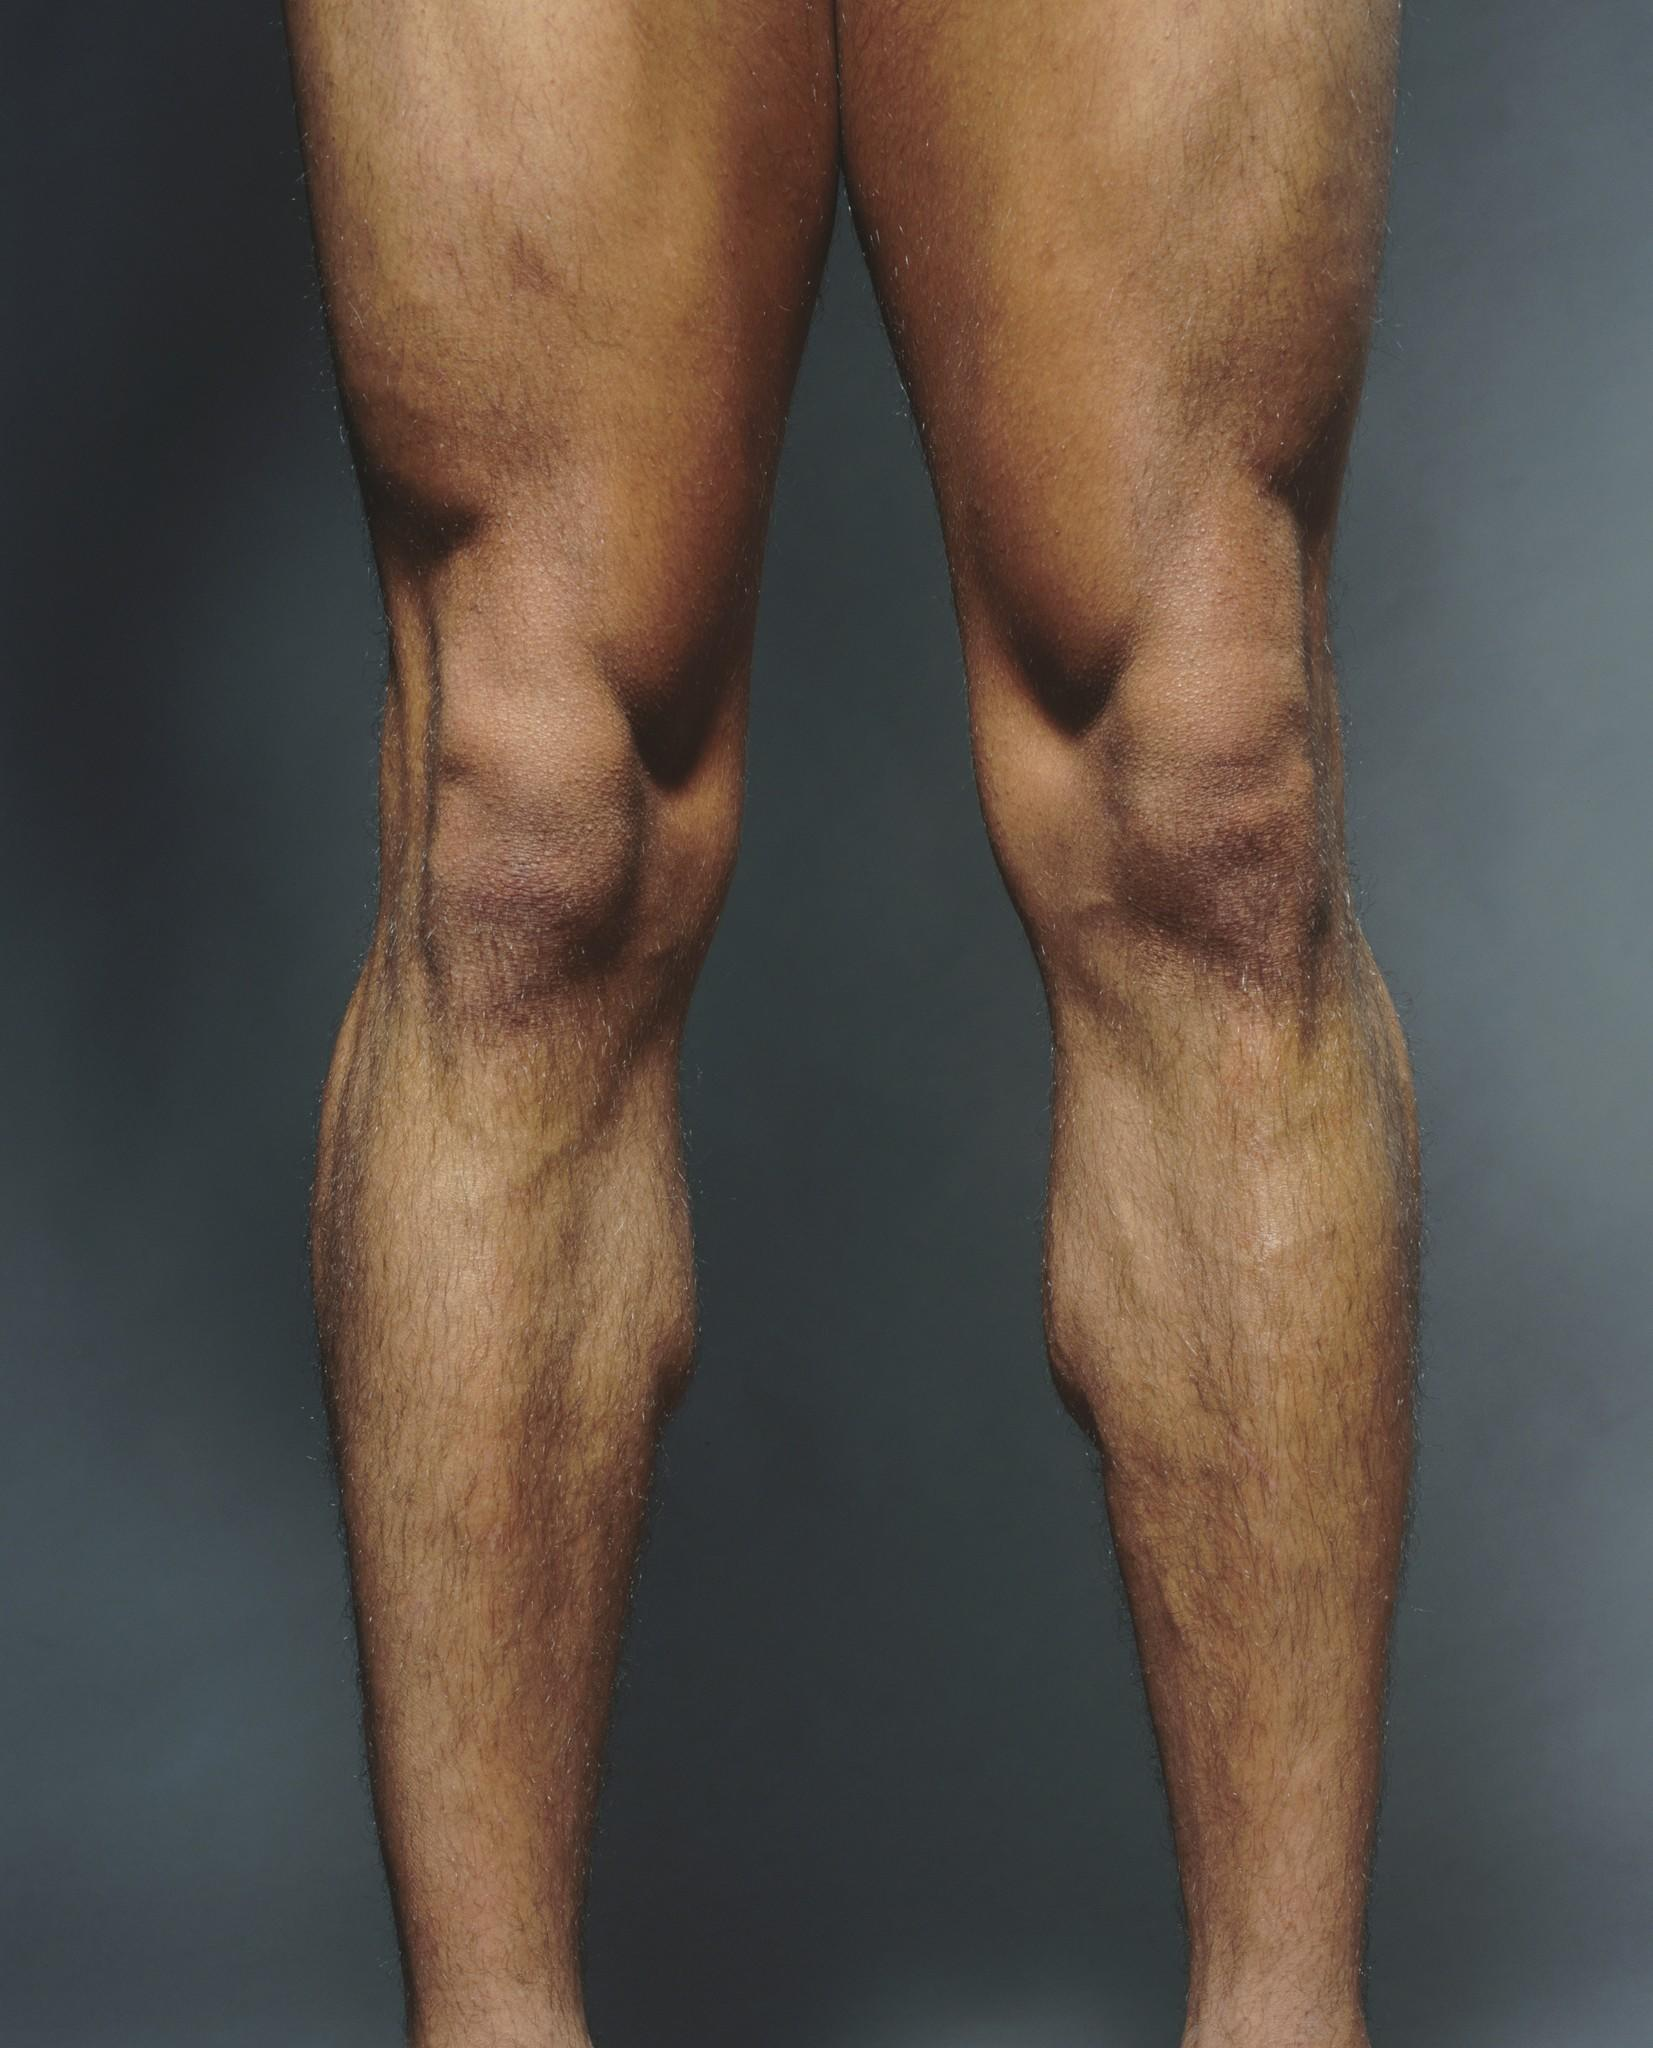 A new study concludes that glucosamine supplementation does not prevent deterioration of knee cartilage or reduce knee pain.